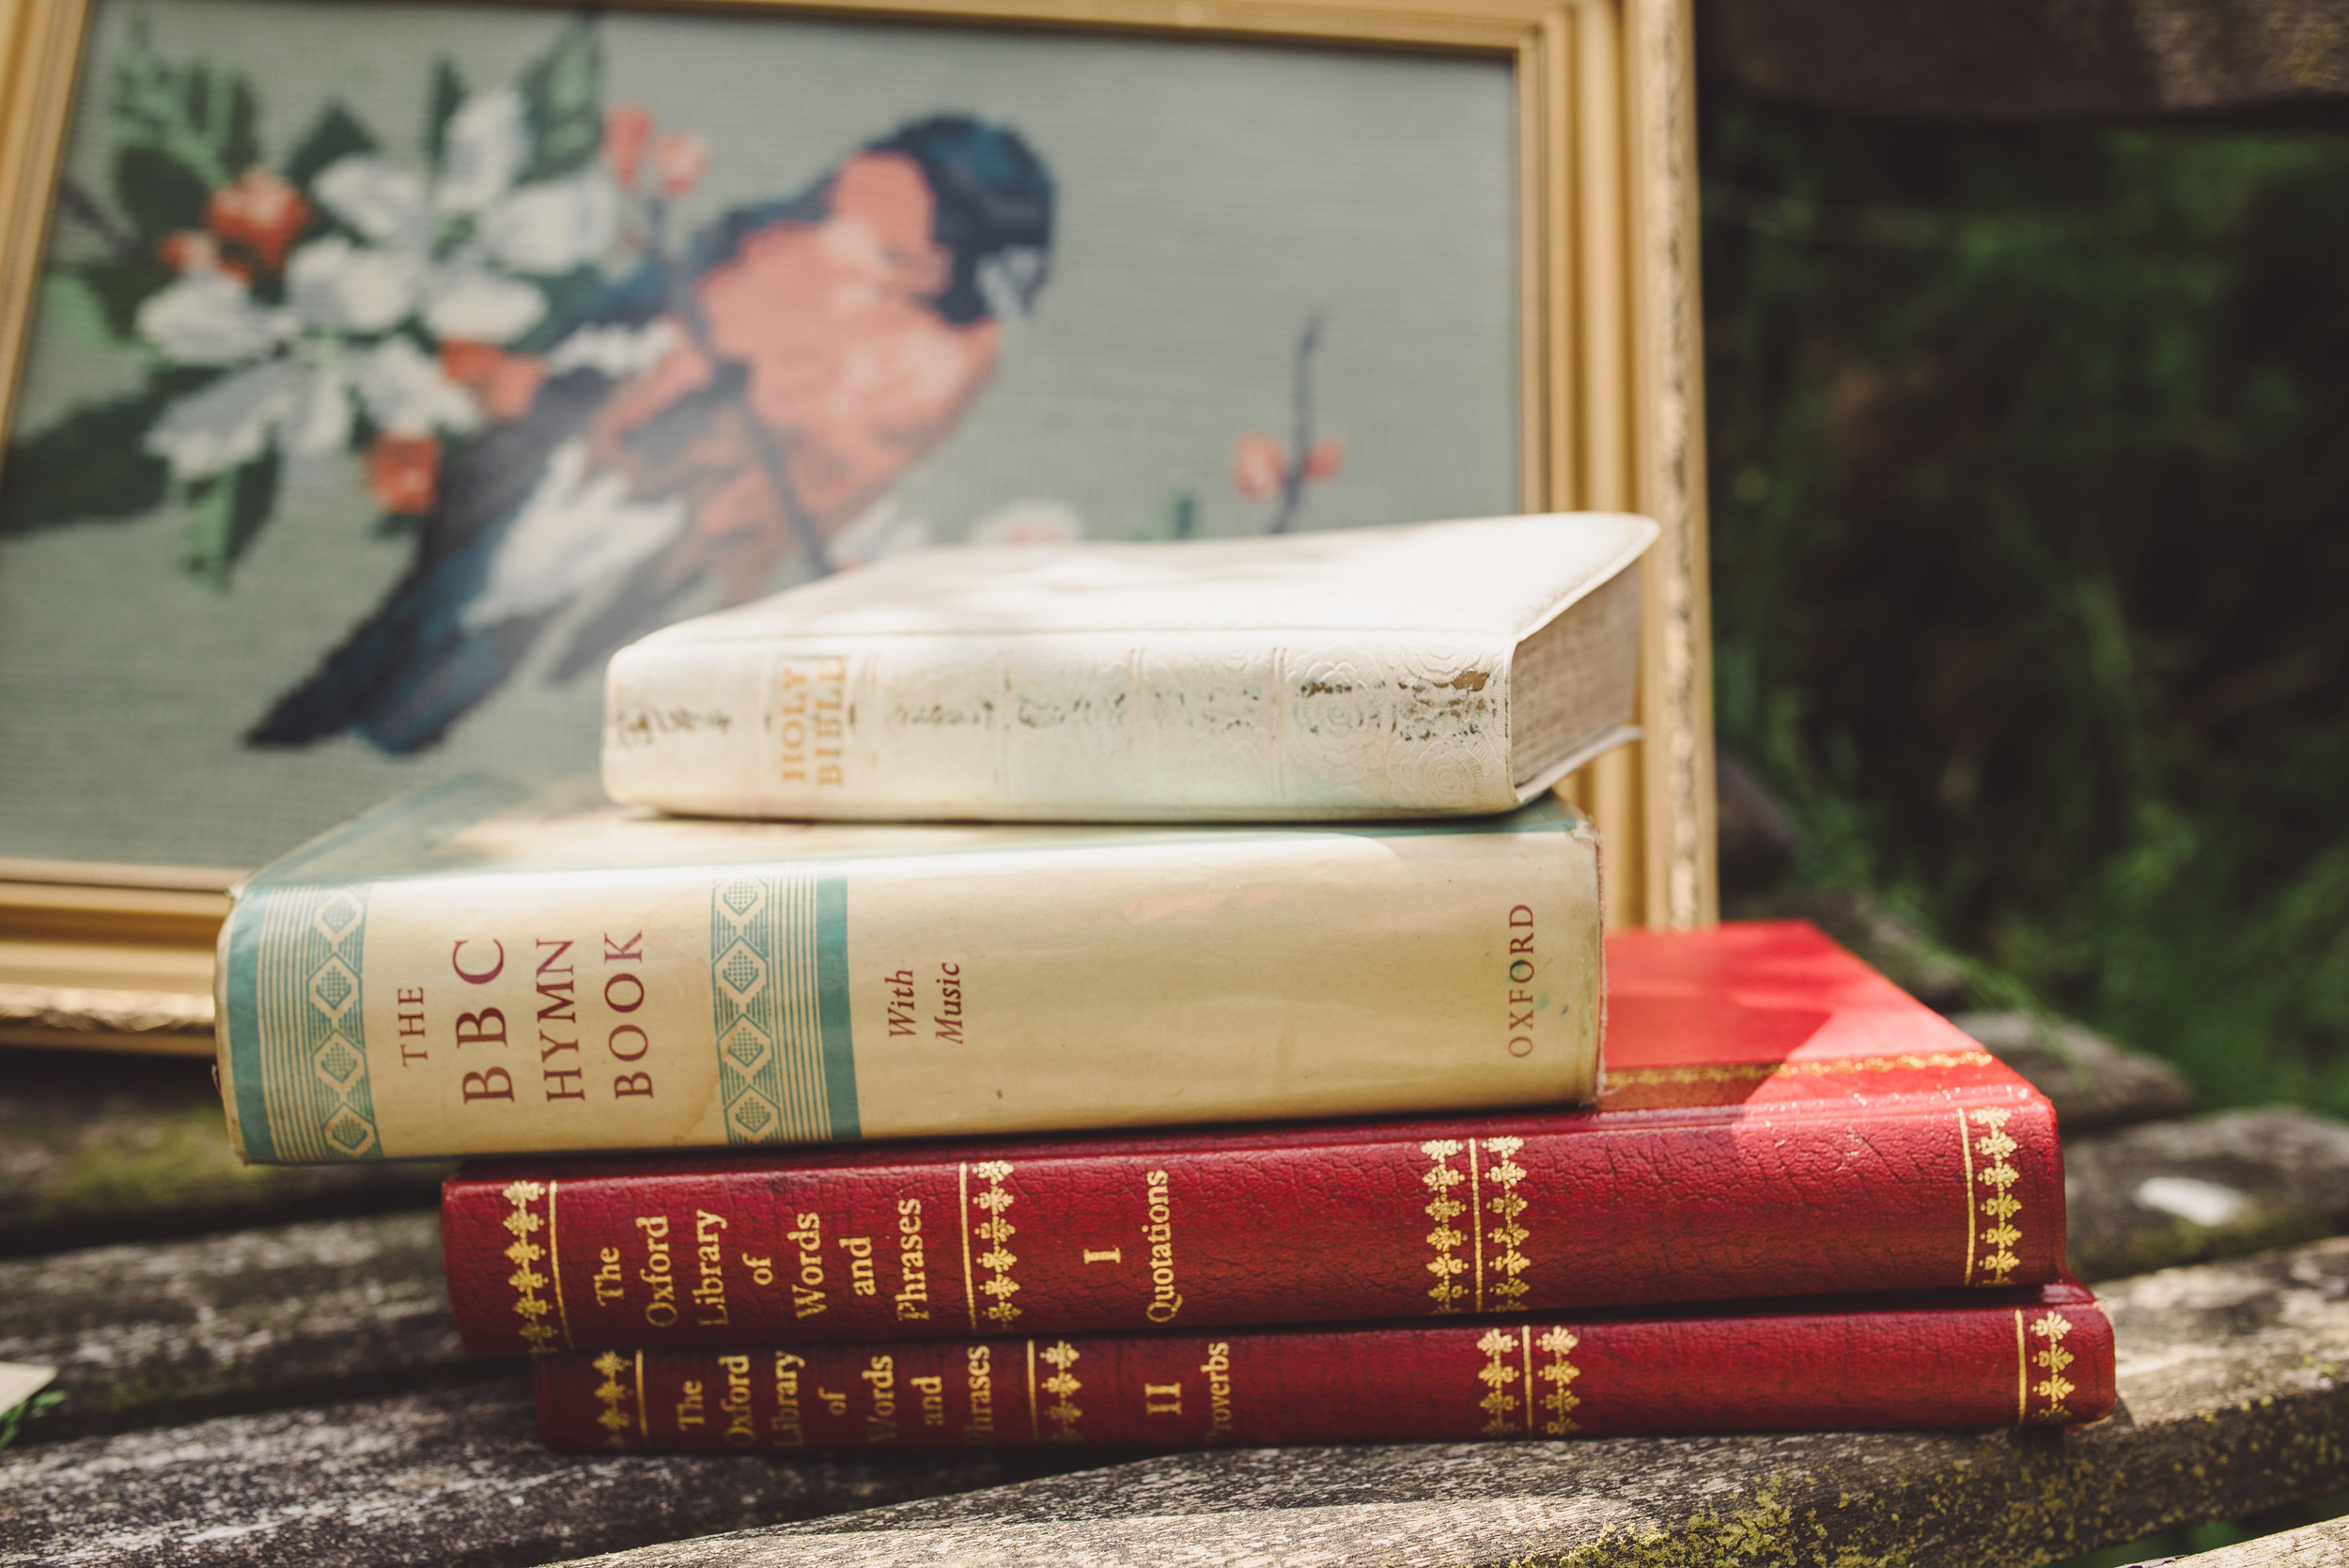 Vintage Books Props provided by:  Bespoke Vintage Castle                                                                 Photo Credit: Becky Ryan Photography